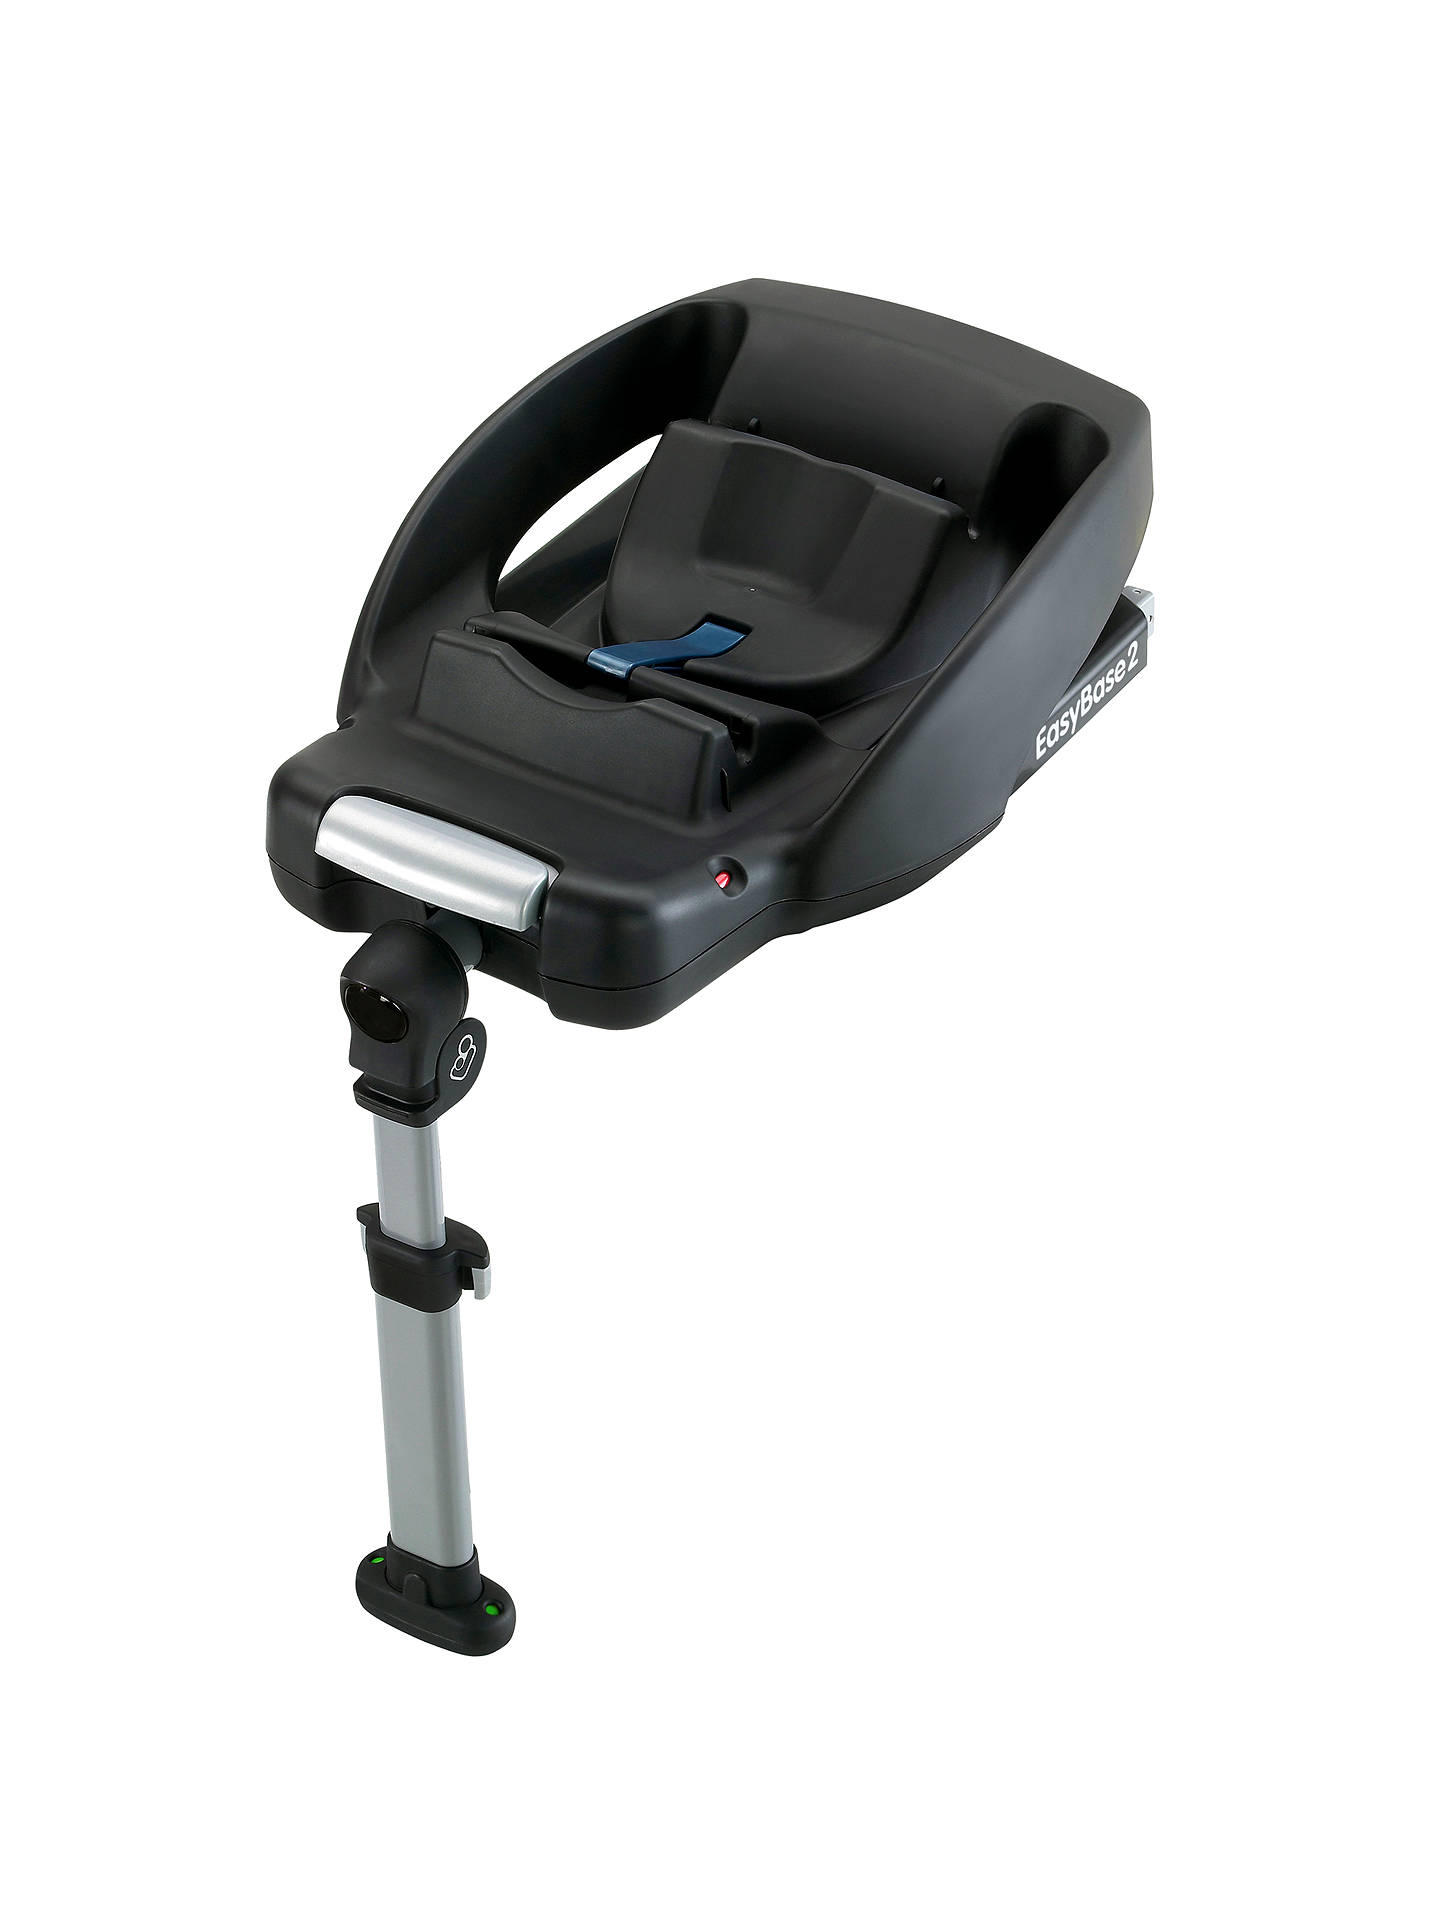 maxi cosi easybase 2 group 0 car seat base at john lewis. Black Bedroom Furniture Sets. Home Design Ideas